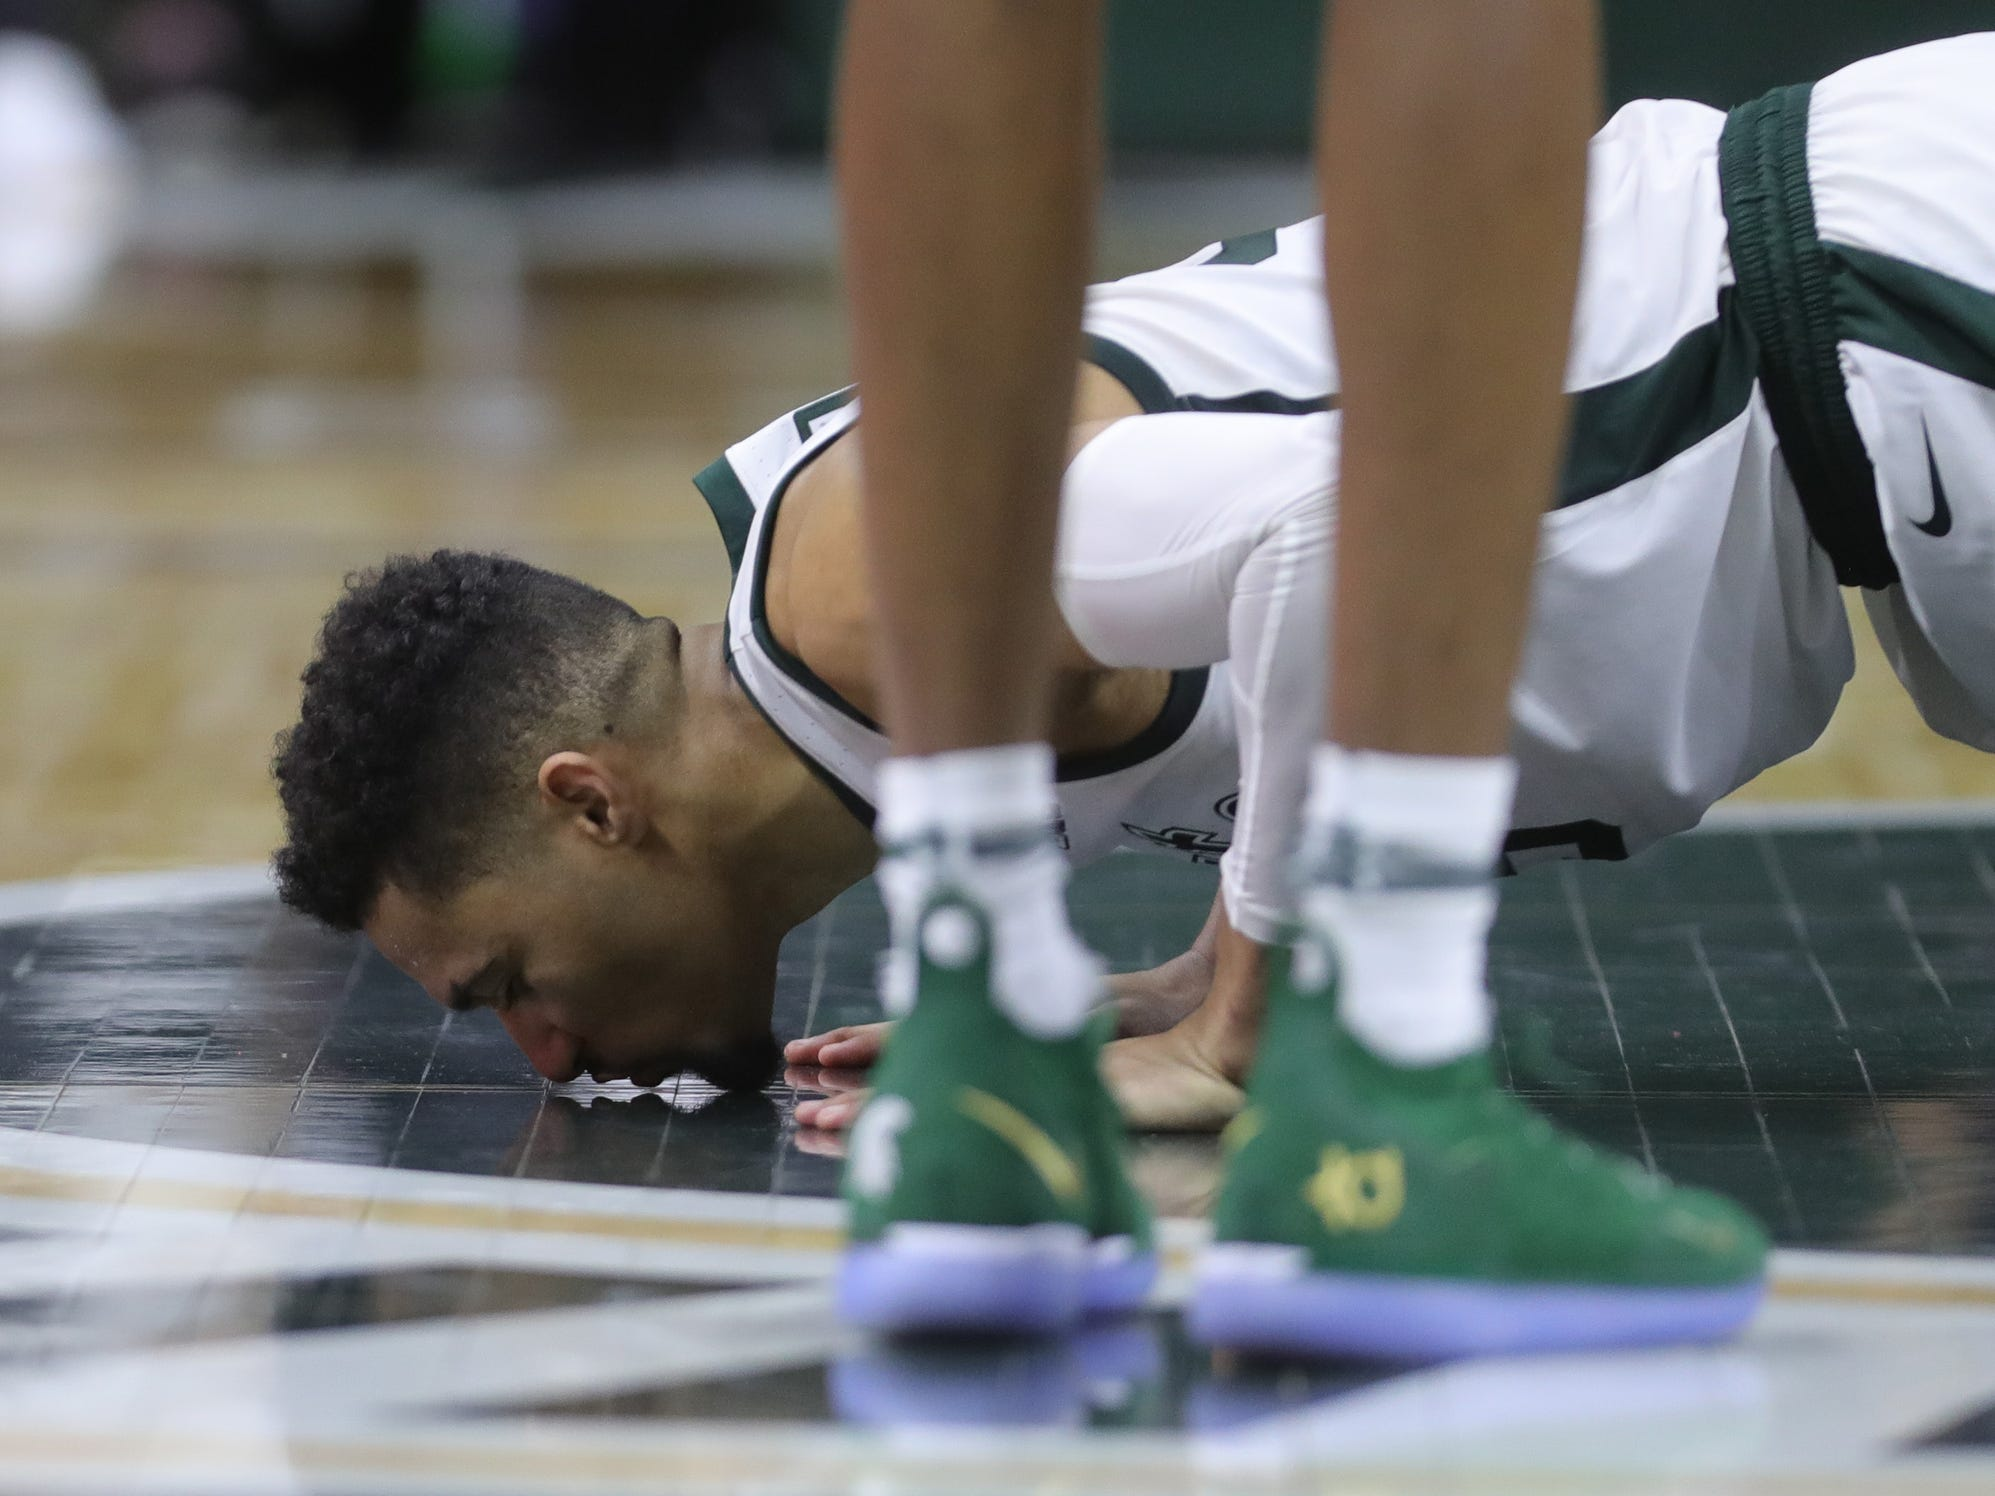 Michigan State senior Kenny Goins kisses the Spartan logo as he leaves the court, Saturday, March 9, 2019 at the Breslin Center in East Lansing, Mich.